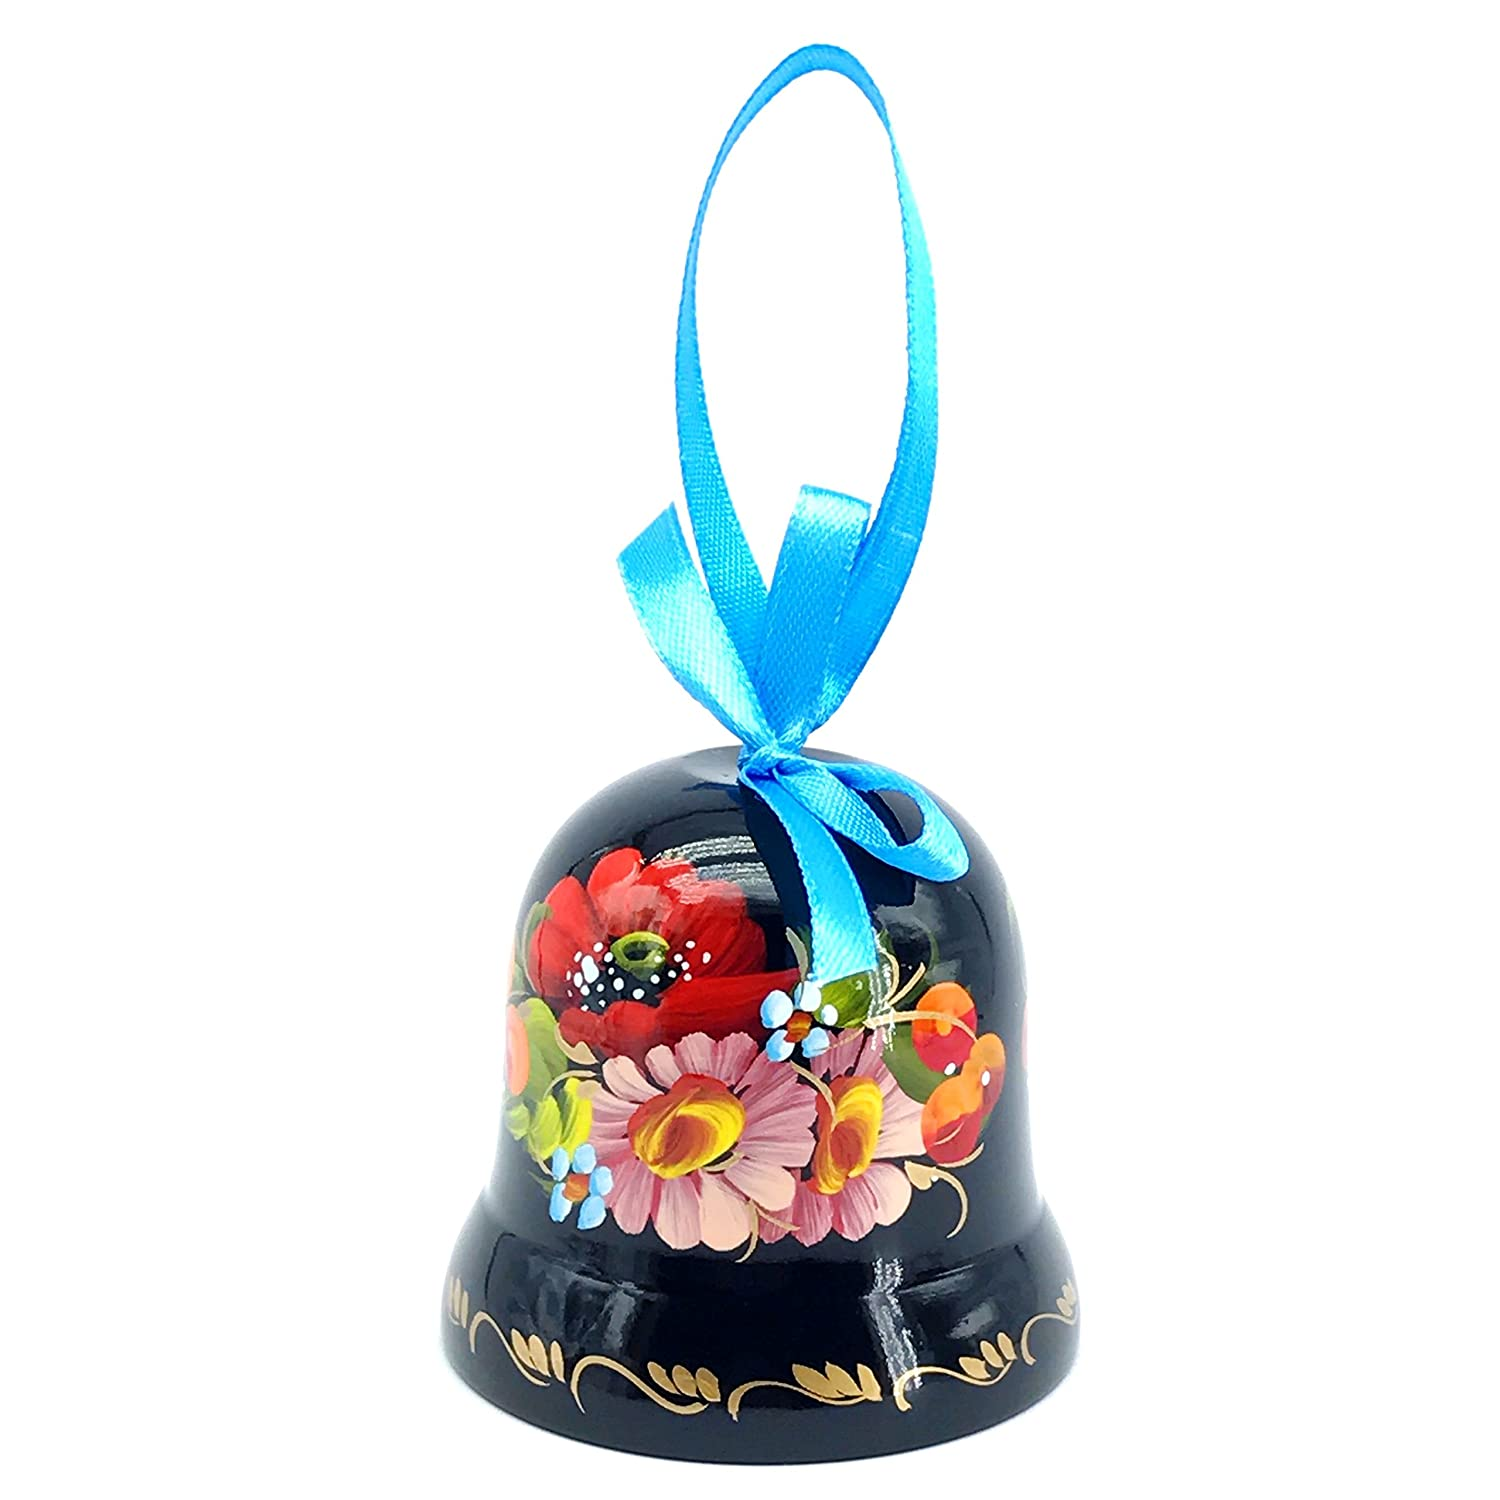 Ukrainian Souvenir Hand Painted Lacquered Wooden Decorative Bell with Ethnic Petrykivka Floral Painting, a Nice Home Decor Accent Item in a Gift Box for Women, Hanging or Desktop (Black and Rose) Sapfir